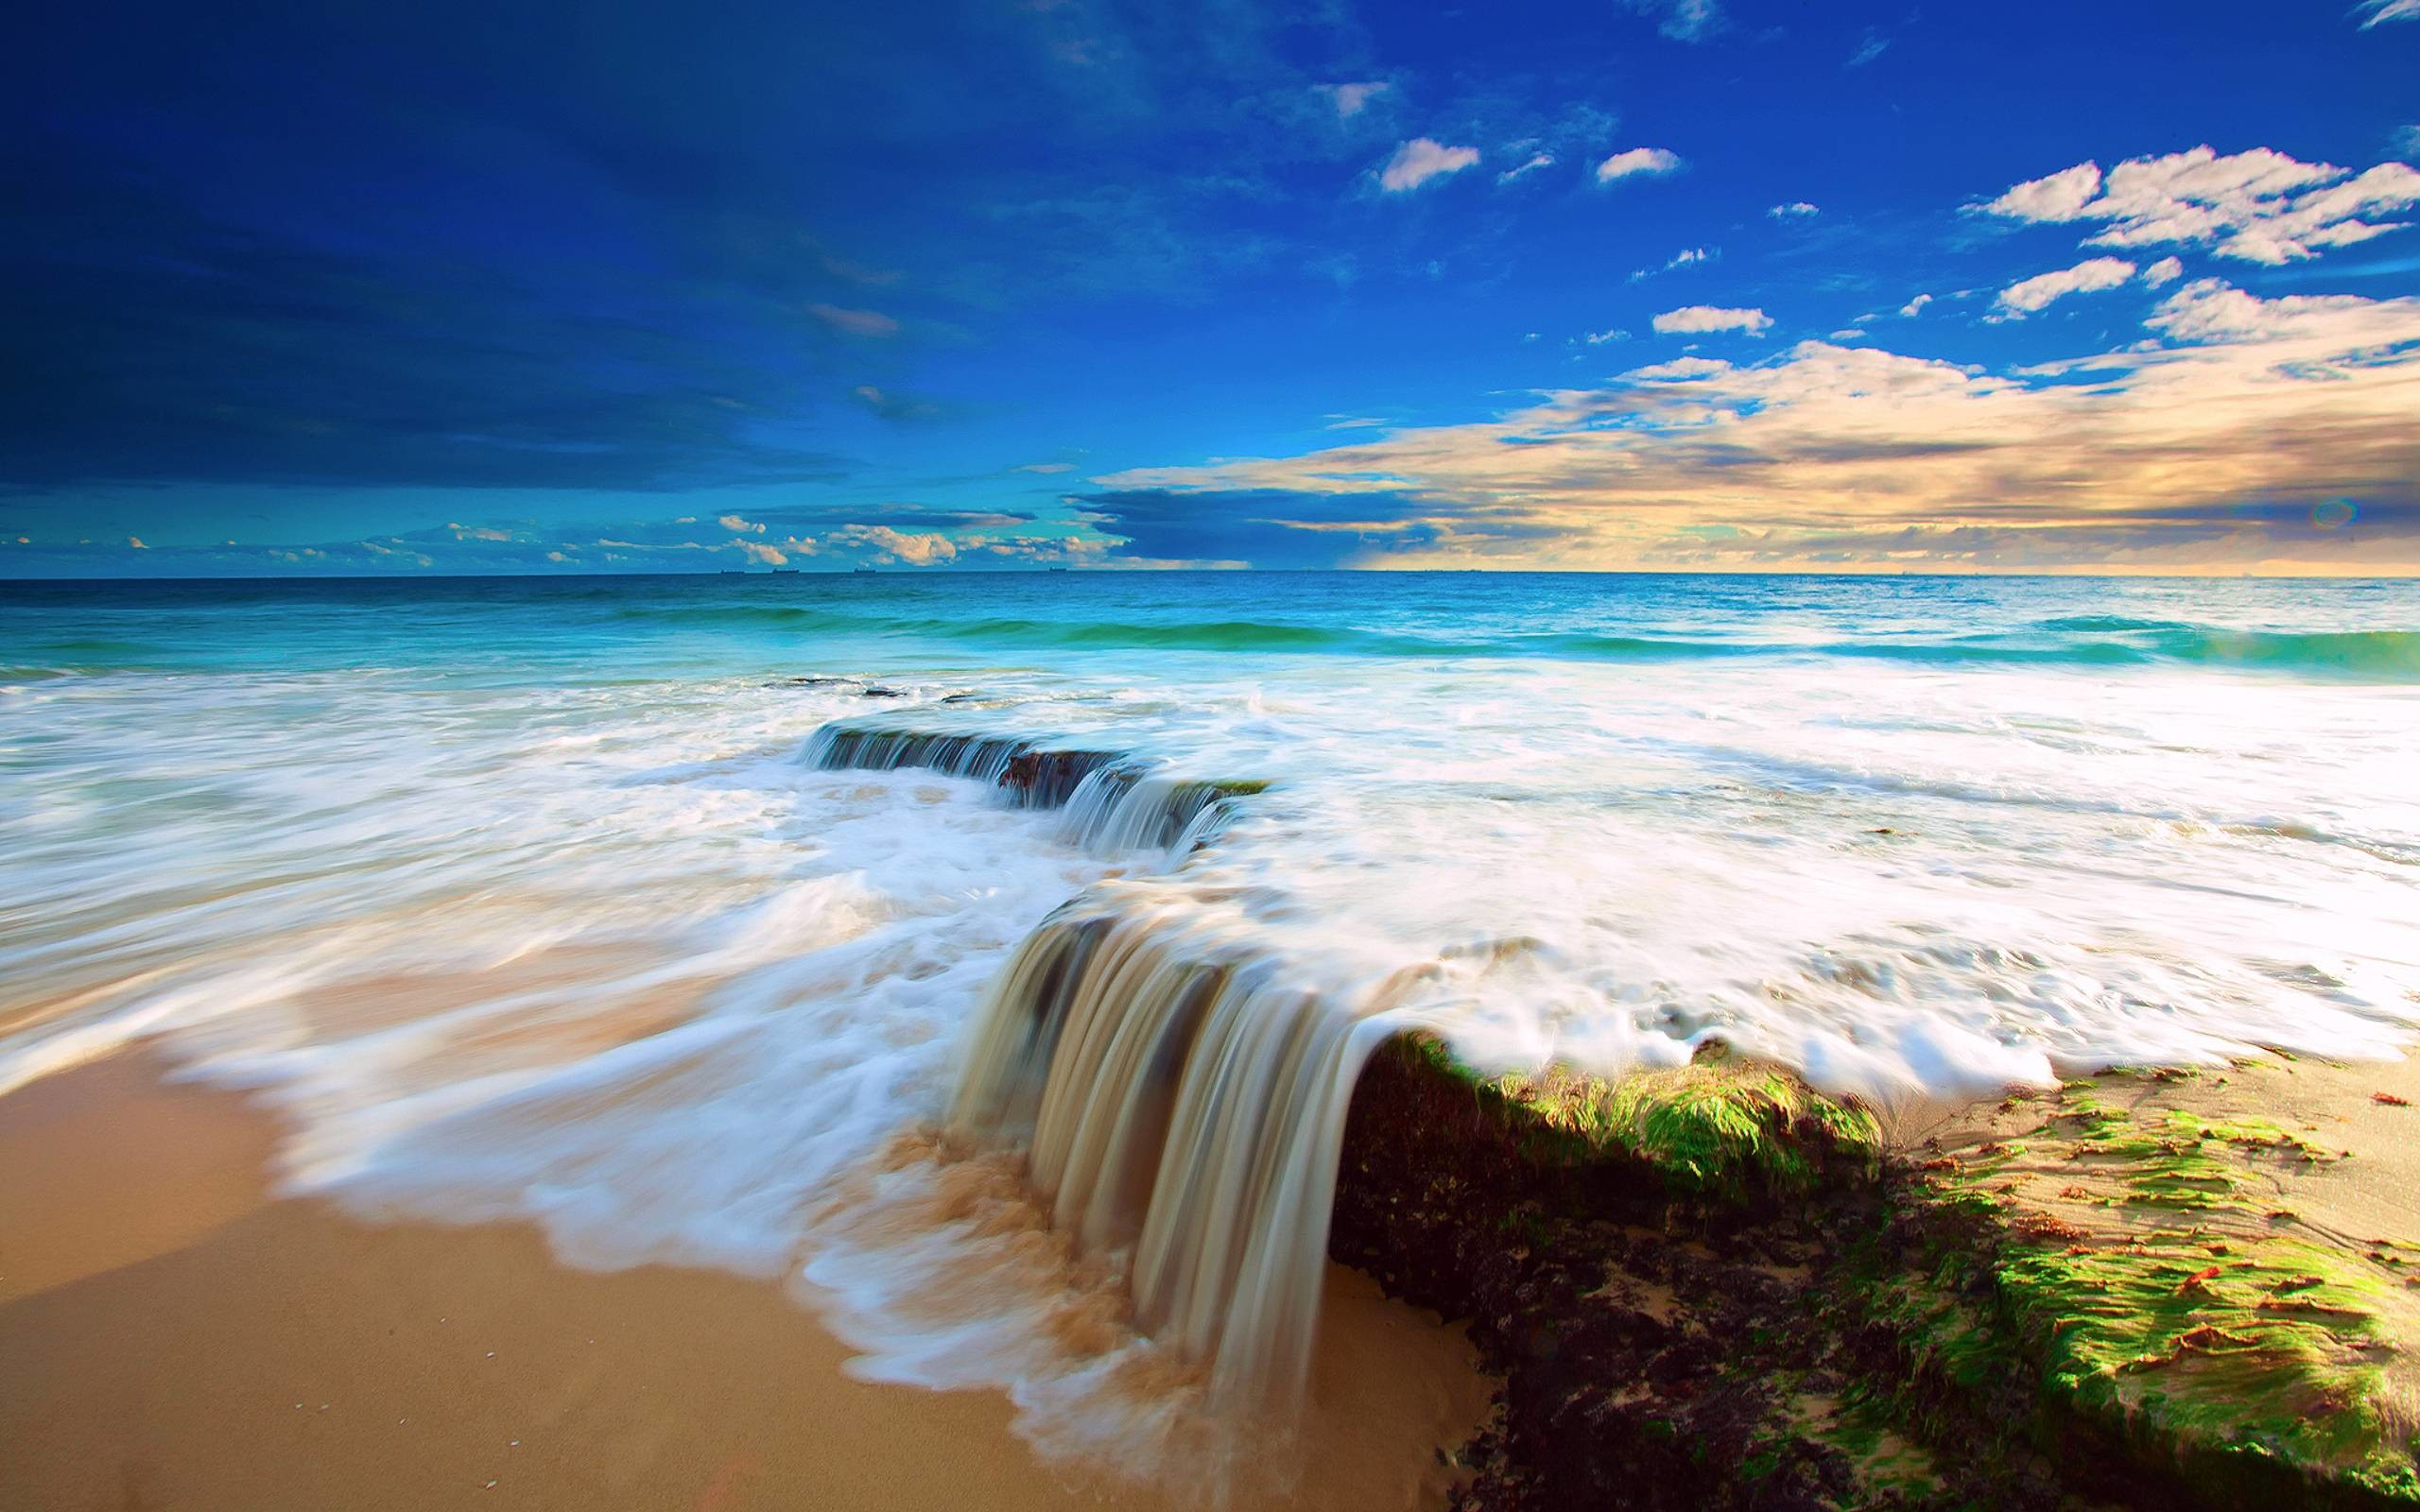 2560x1600 Cool Ocean Wallpaper Images & Pictures - Becuo